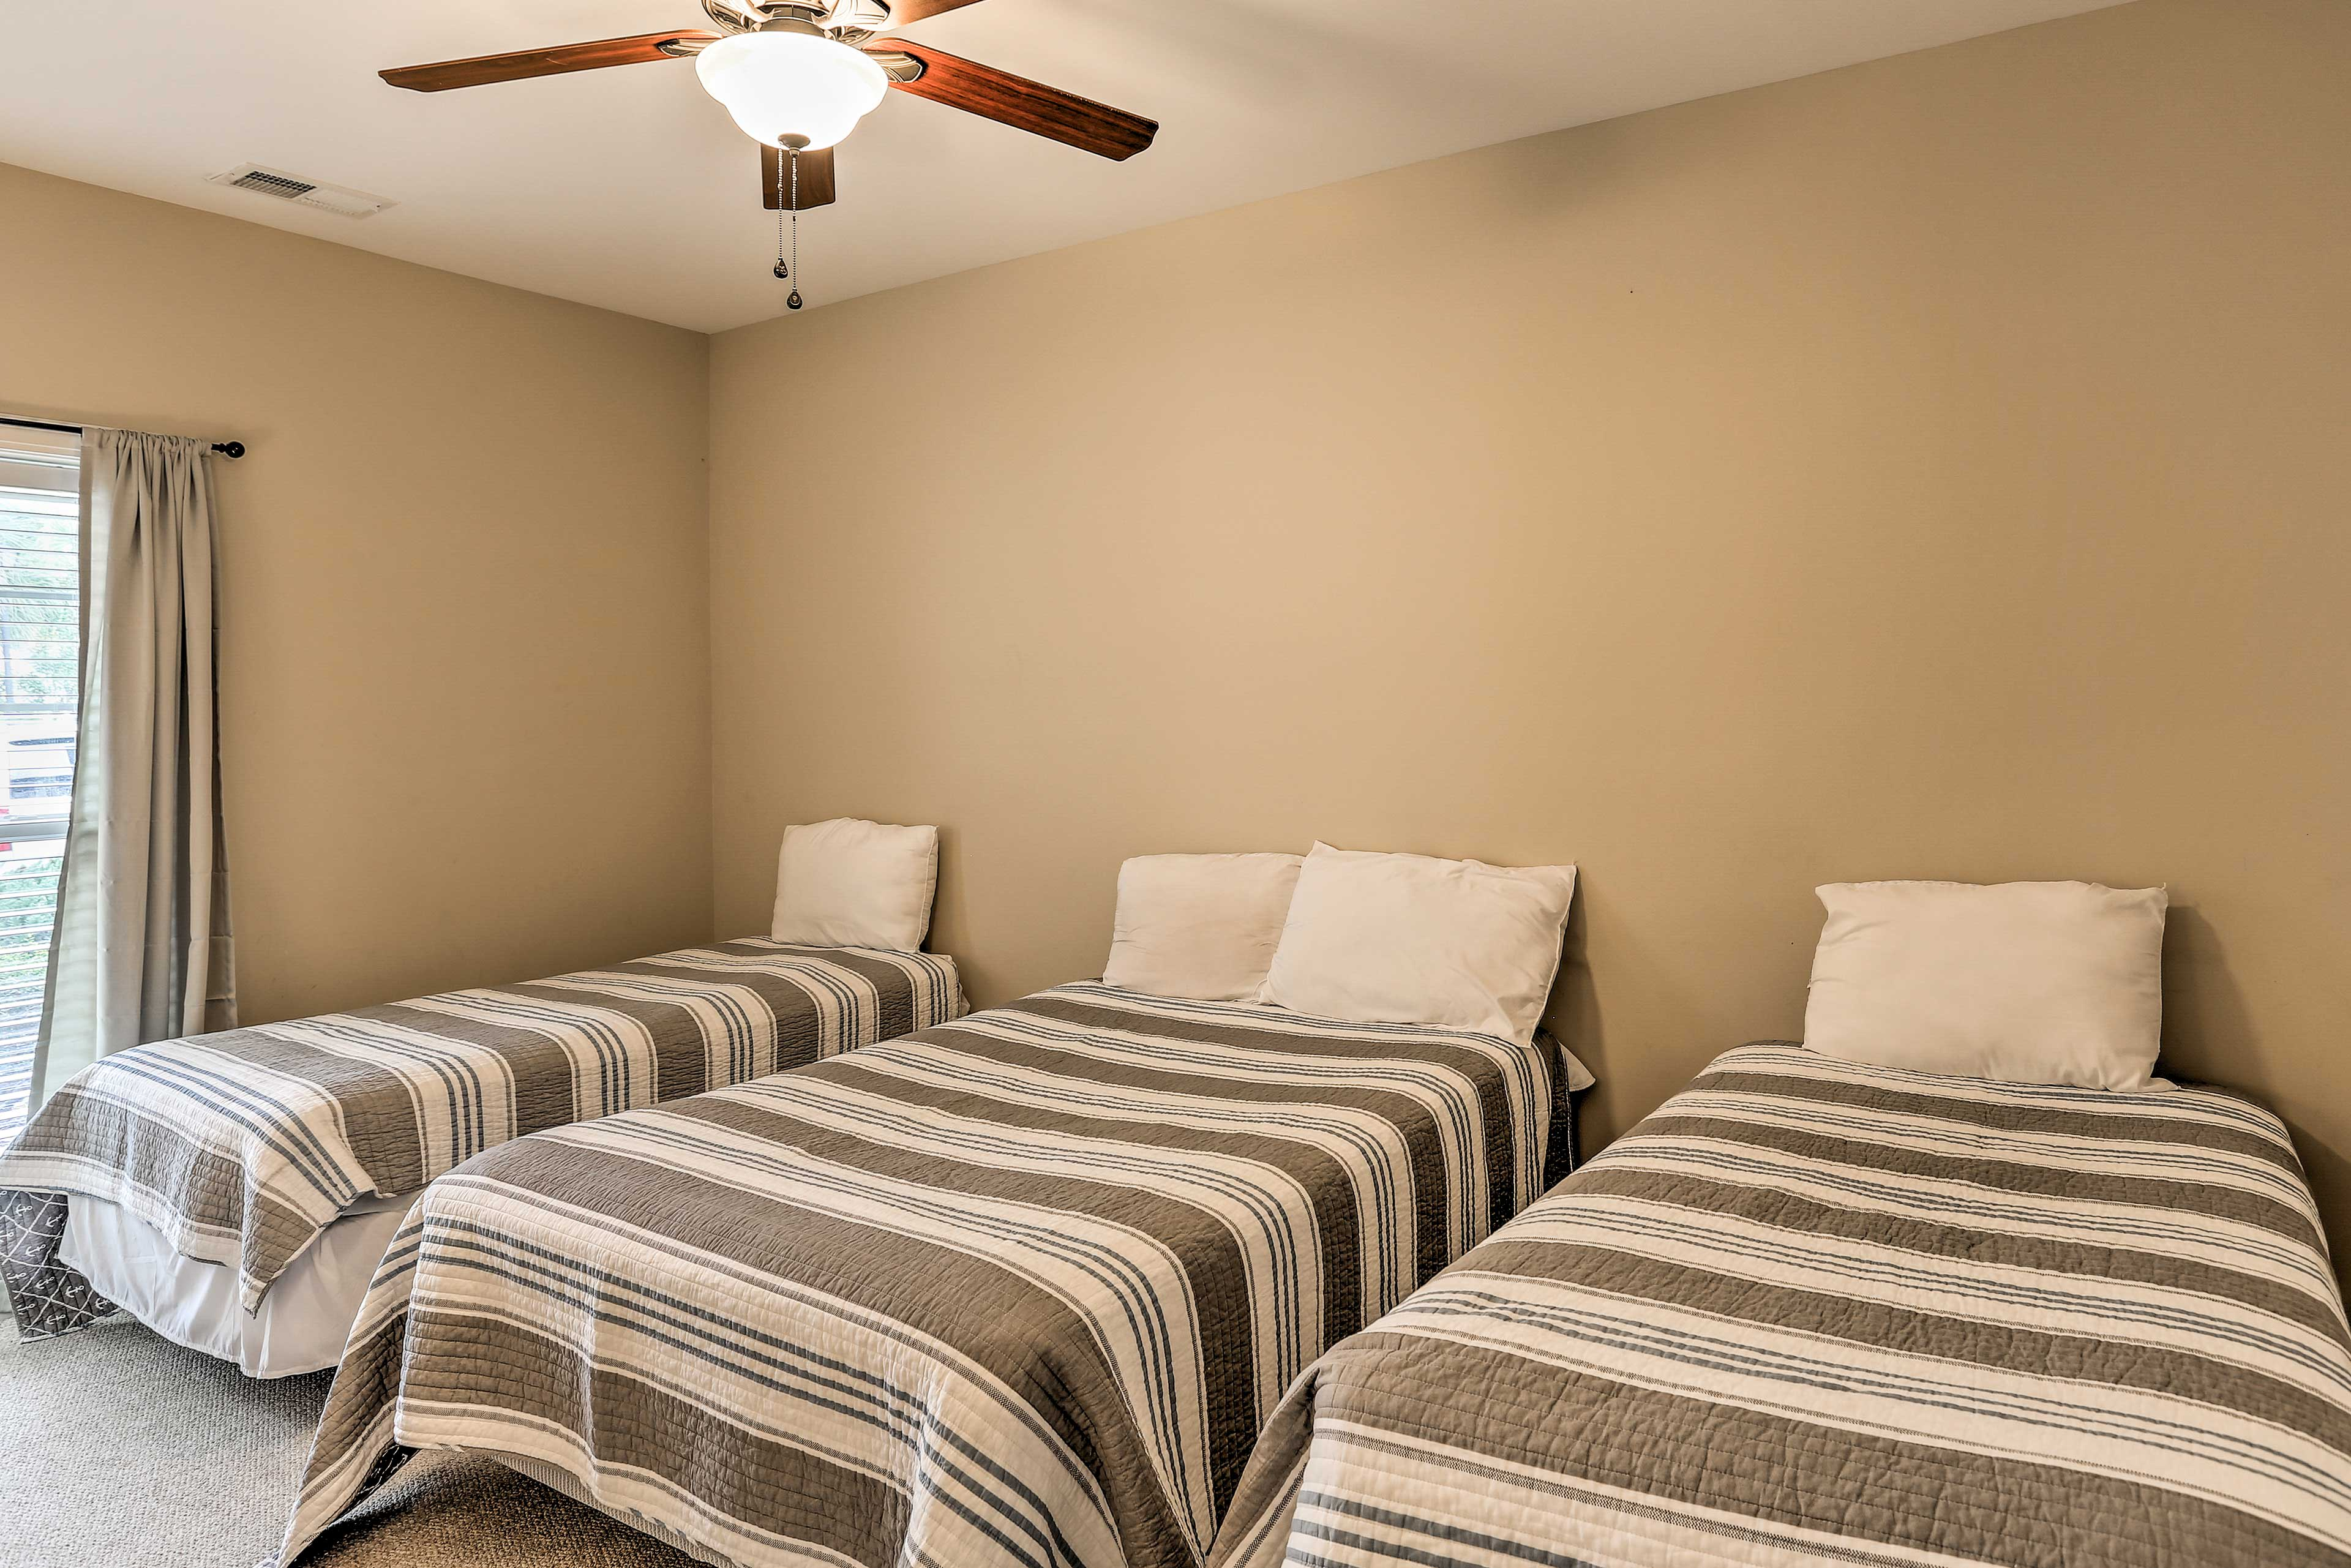 Up to 4 travelers will sleep comfortably in this second bedroom.